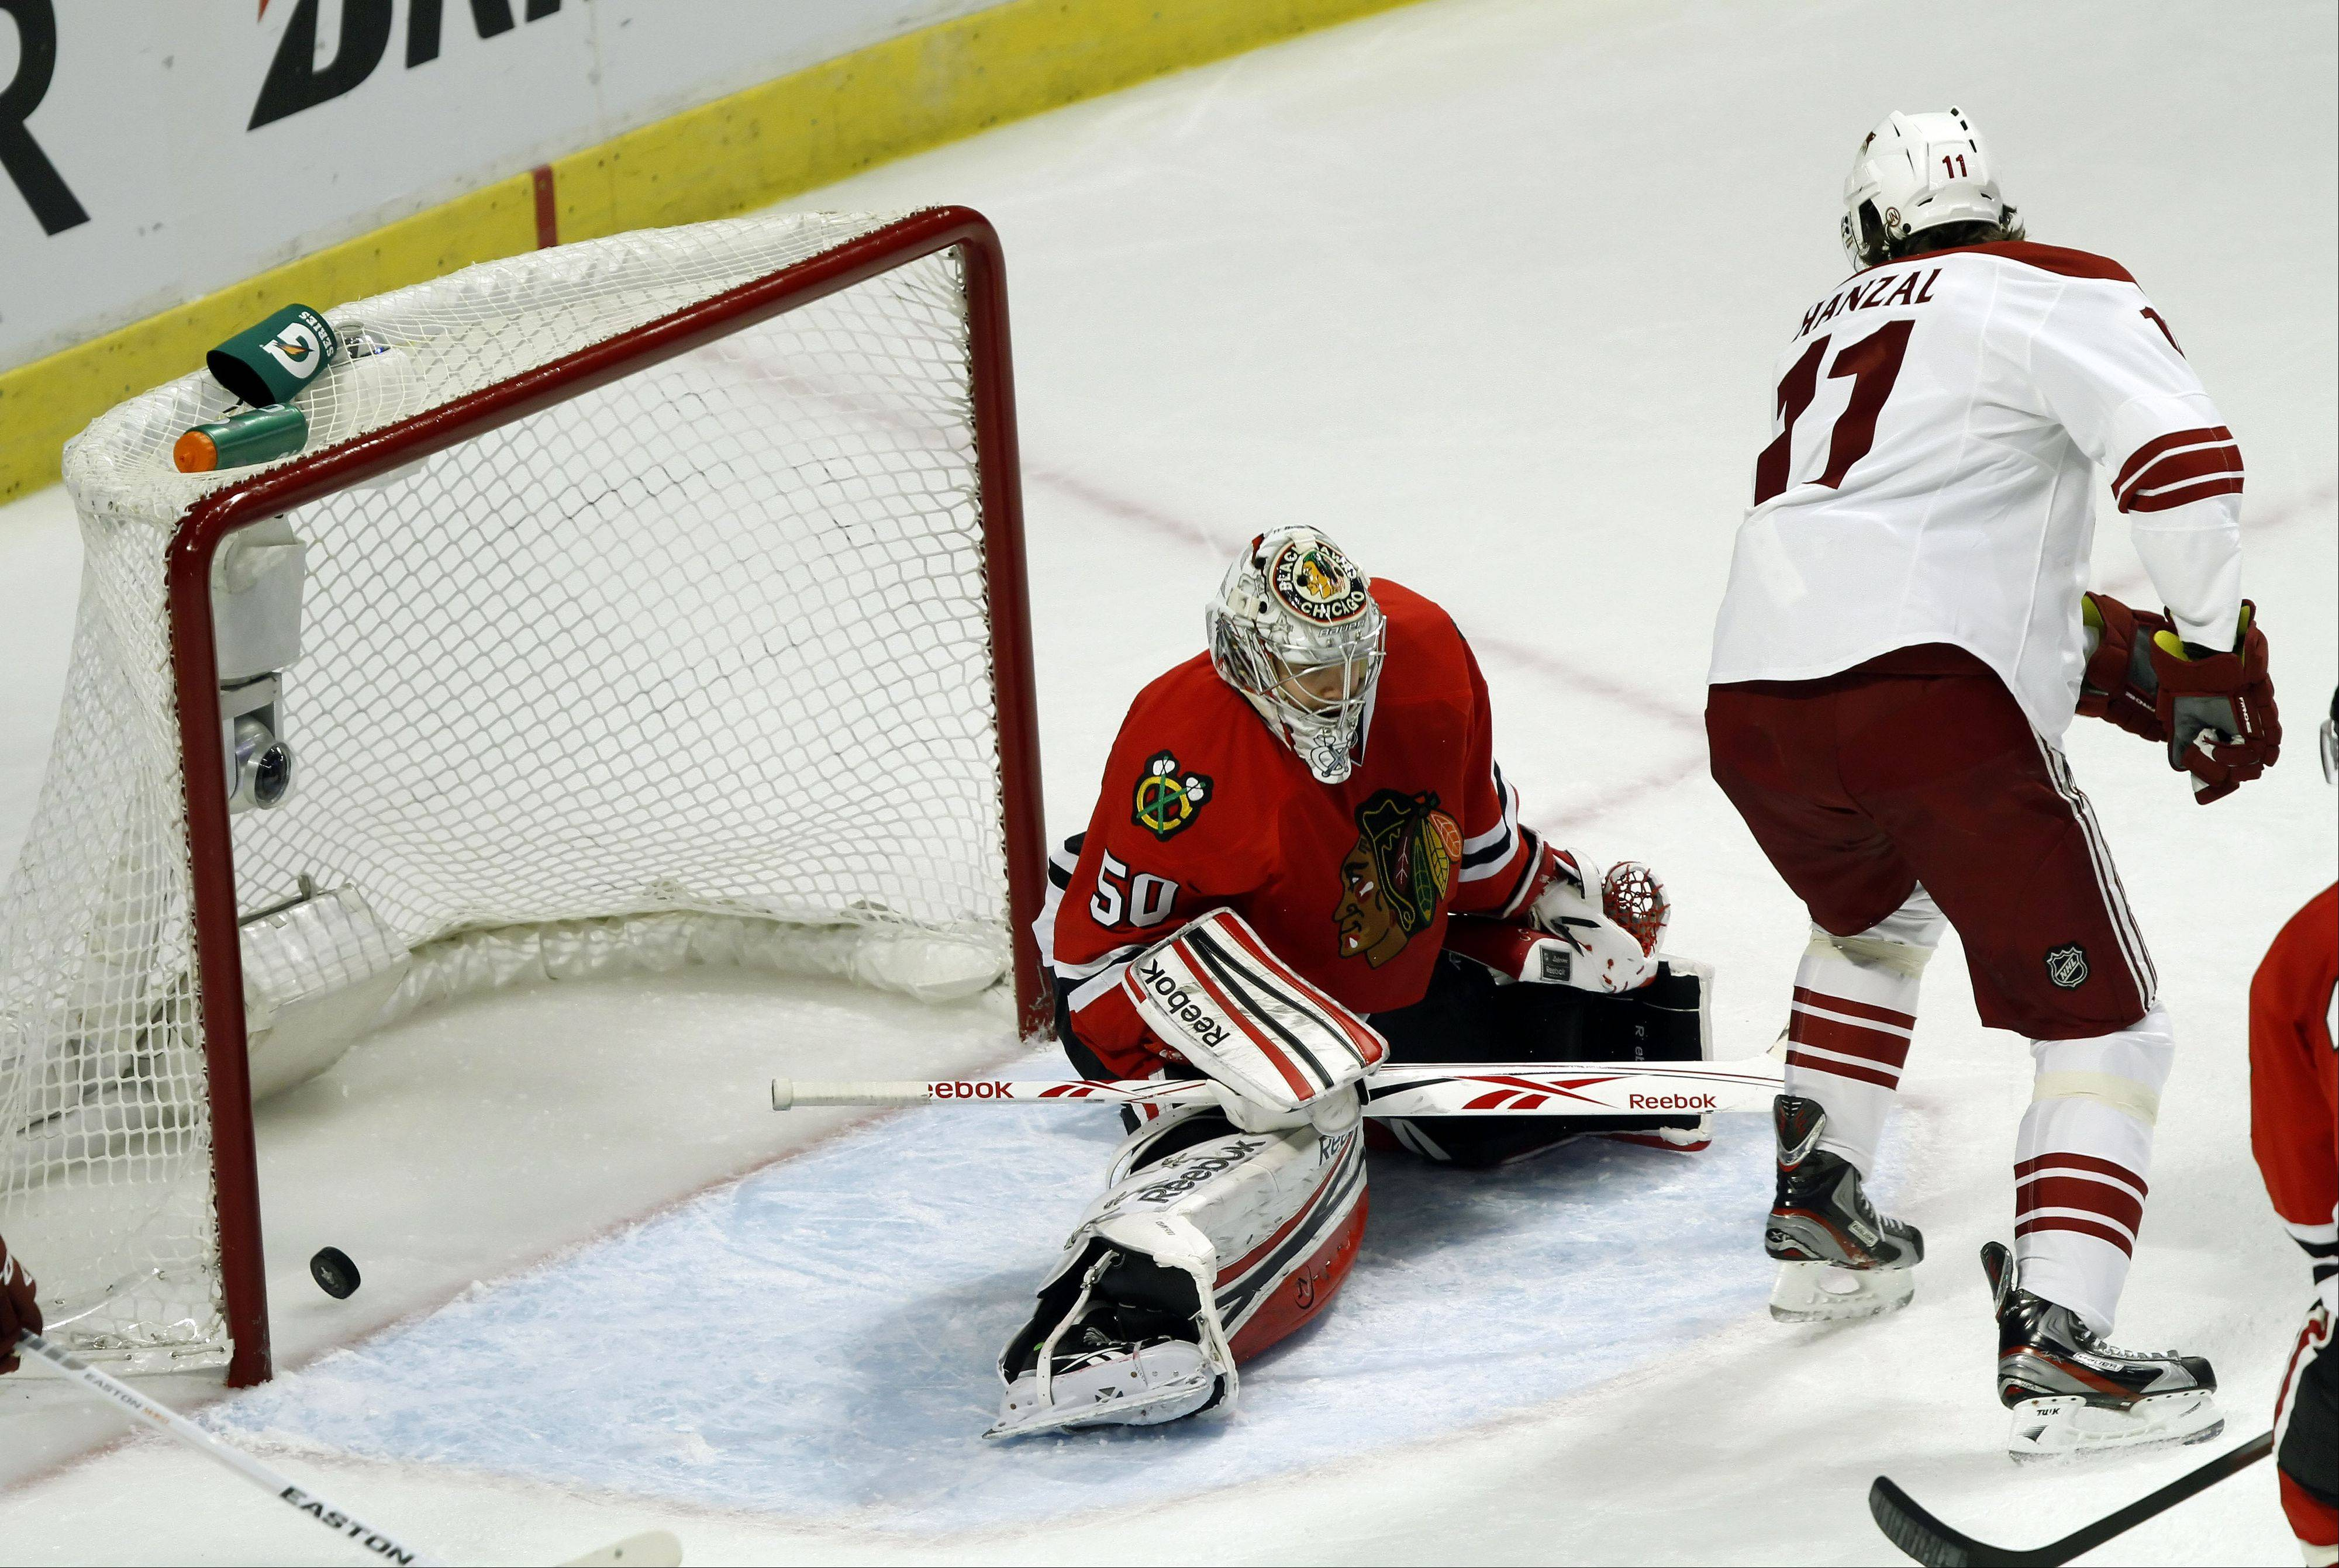 Chicago Blackhawks' goalie Corey Crawford allows a goal in the second period.